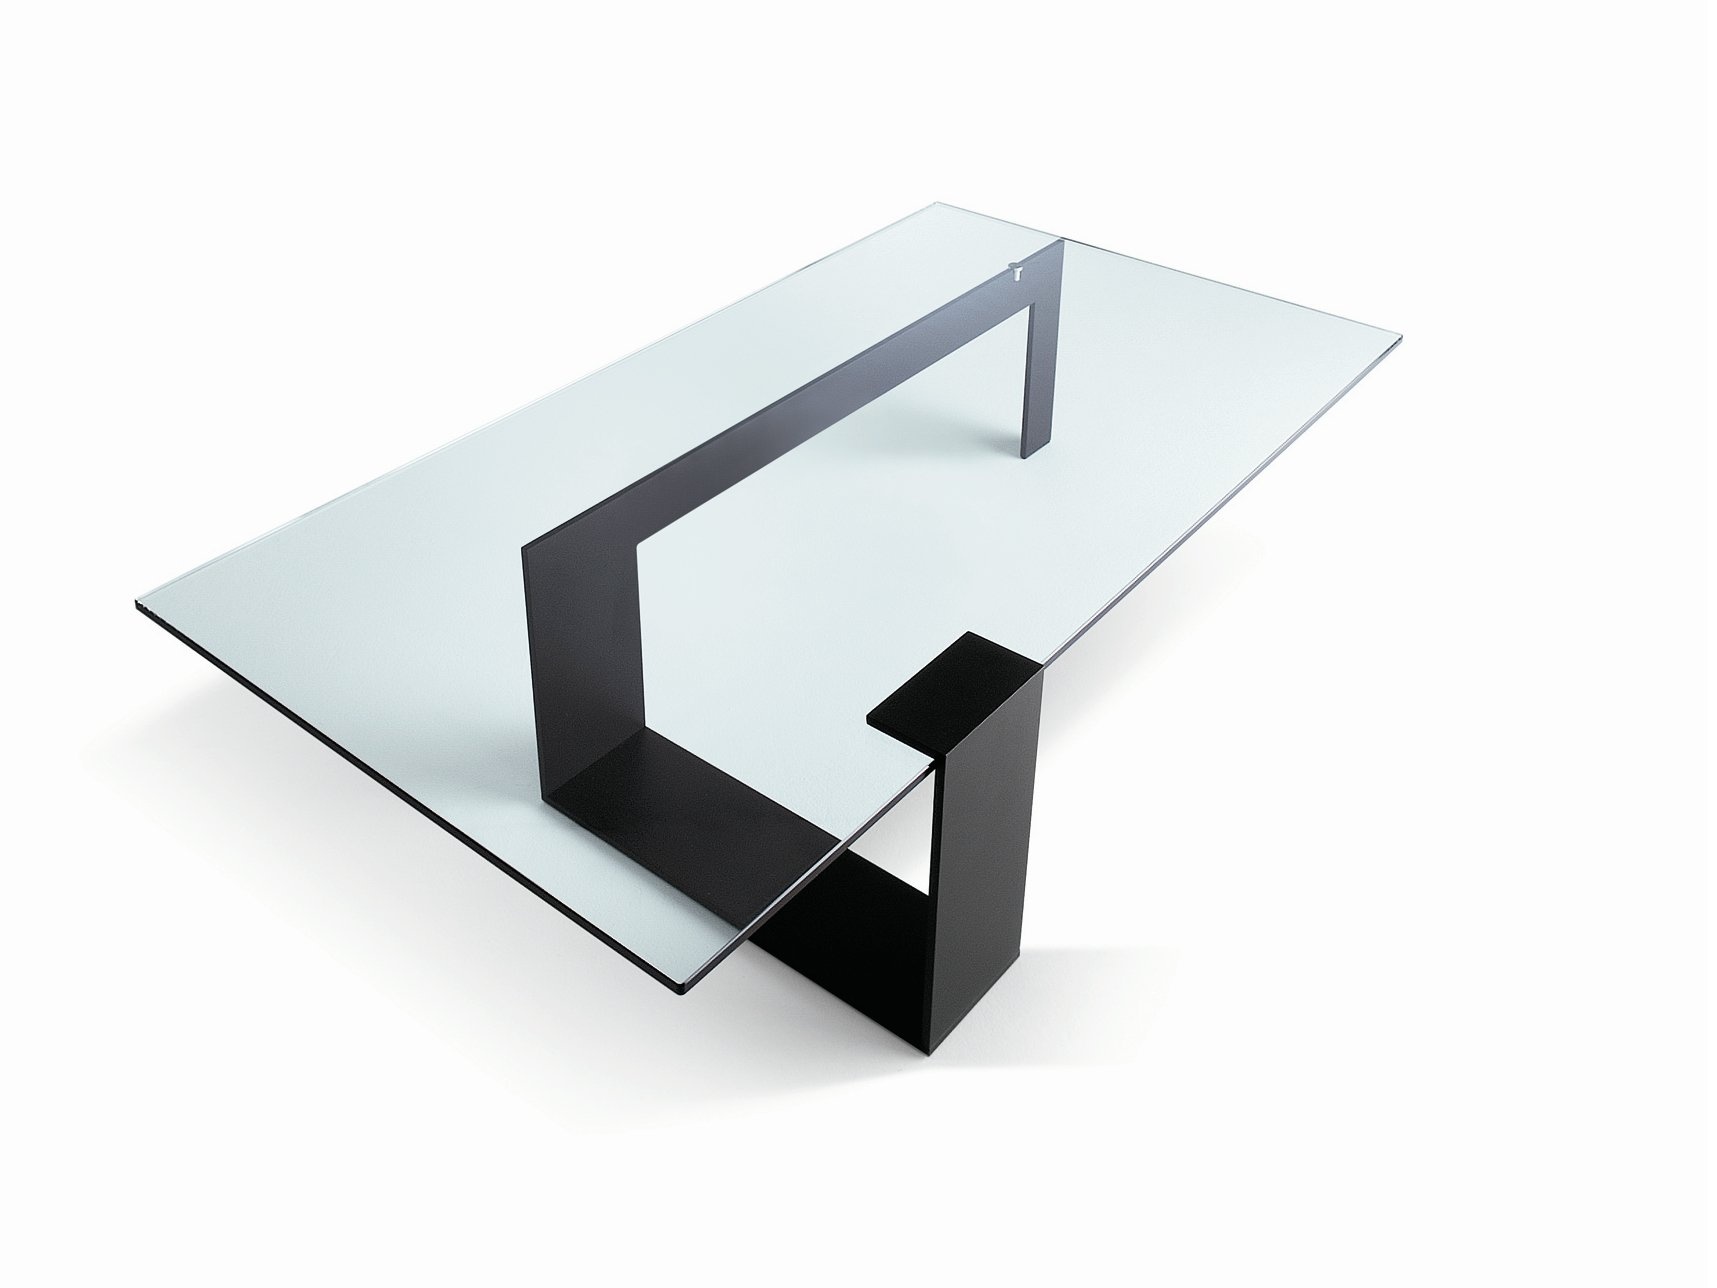 Table basse en verre plinsky by t d tonelli design design - Tables basses design en verre ...